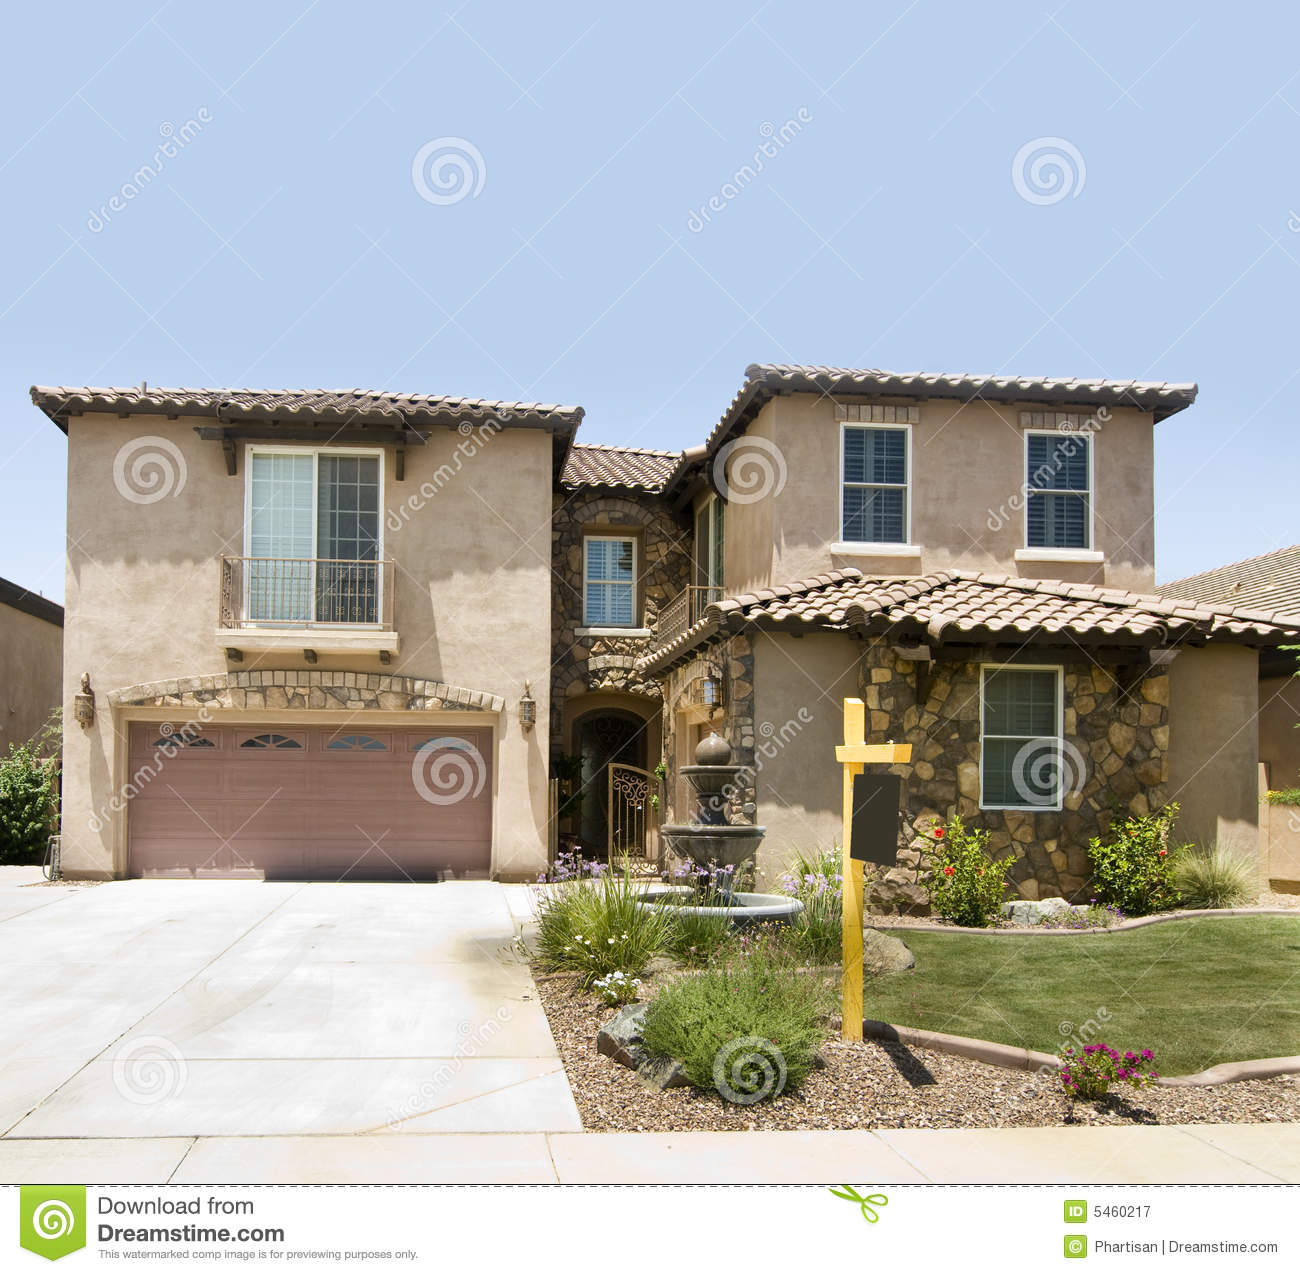 Southwestern Home For Sale Royalty Free Stock Photography